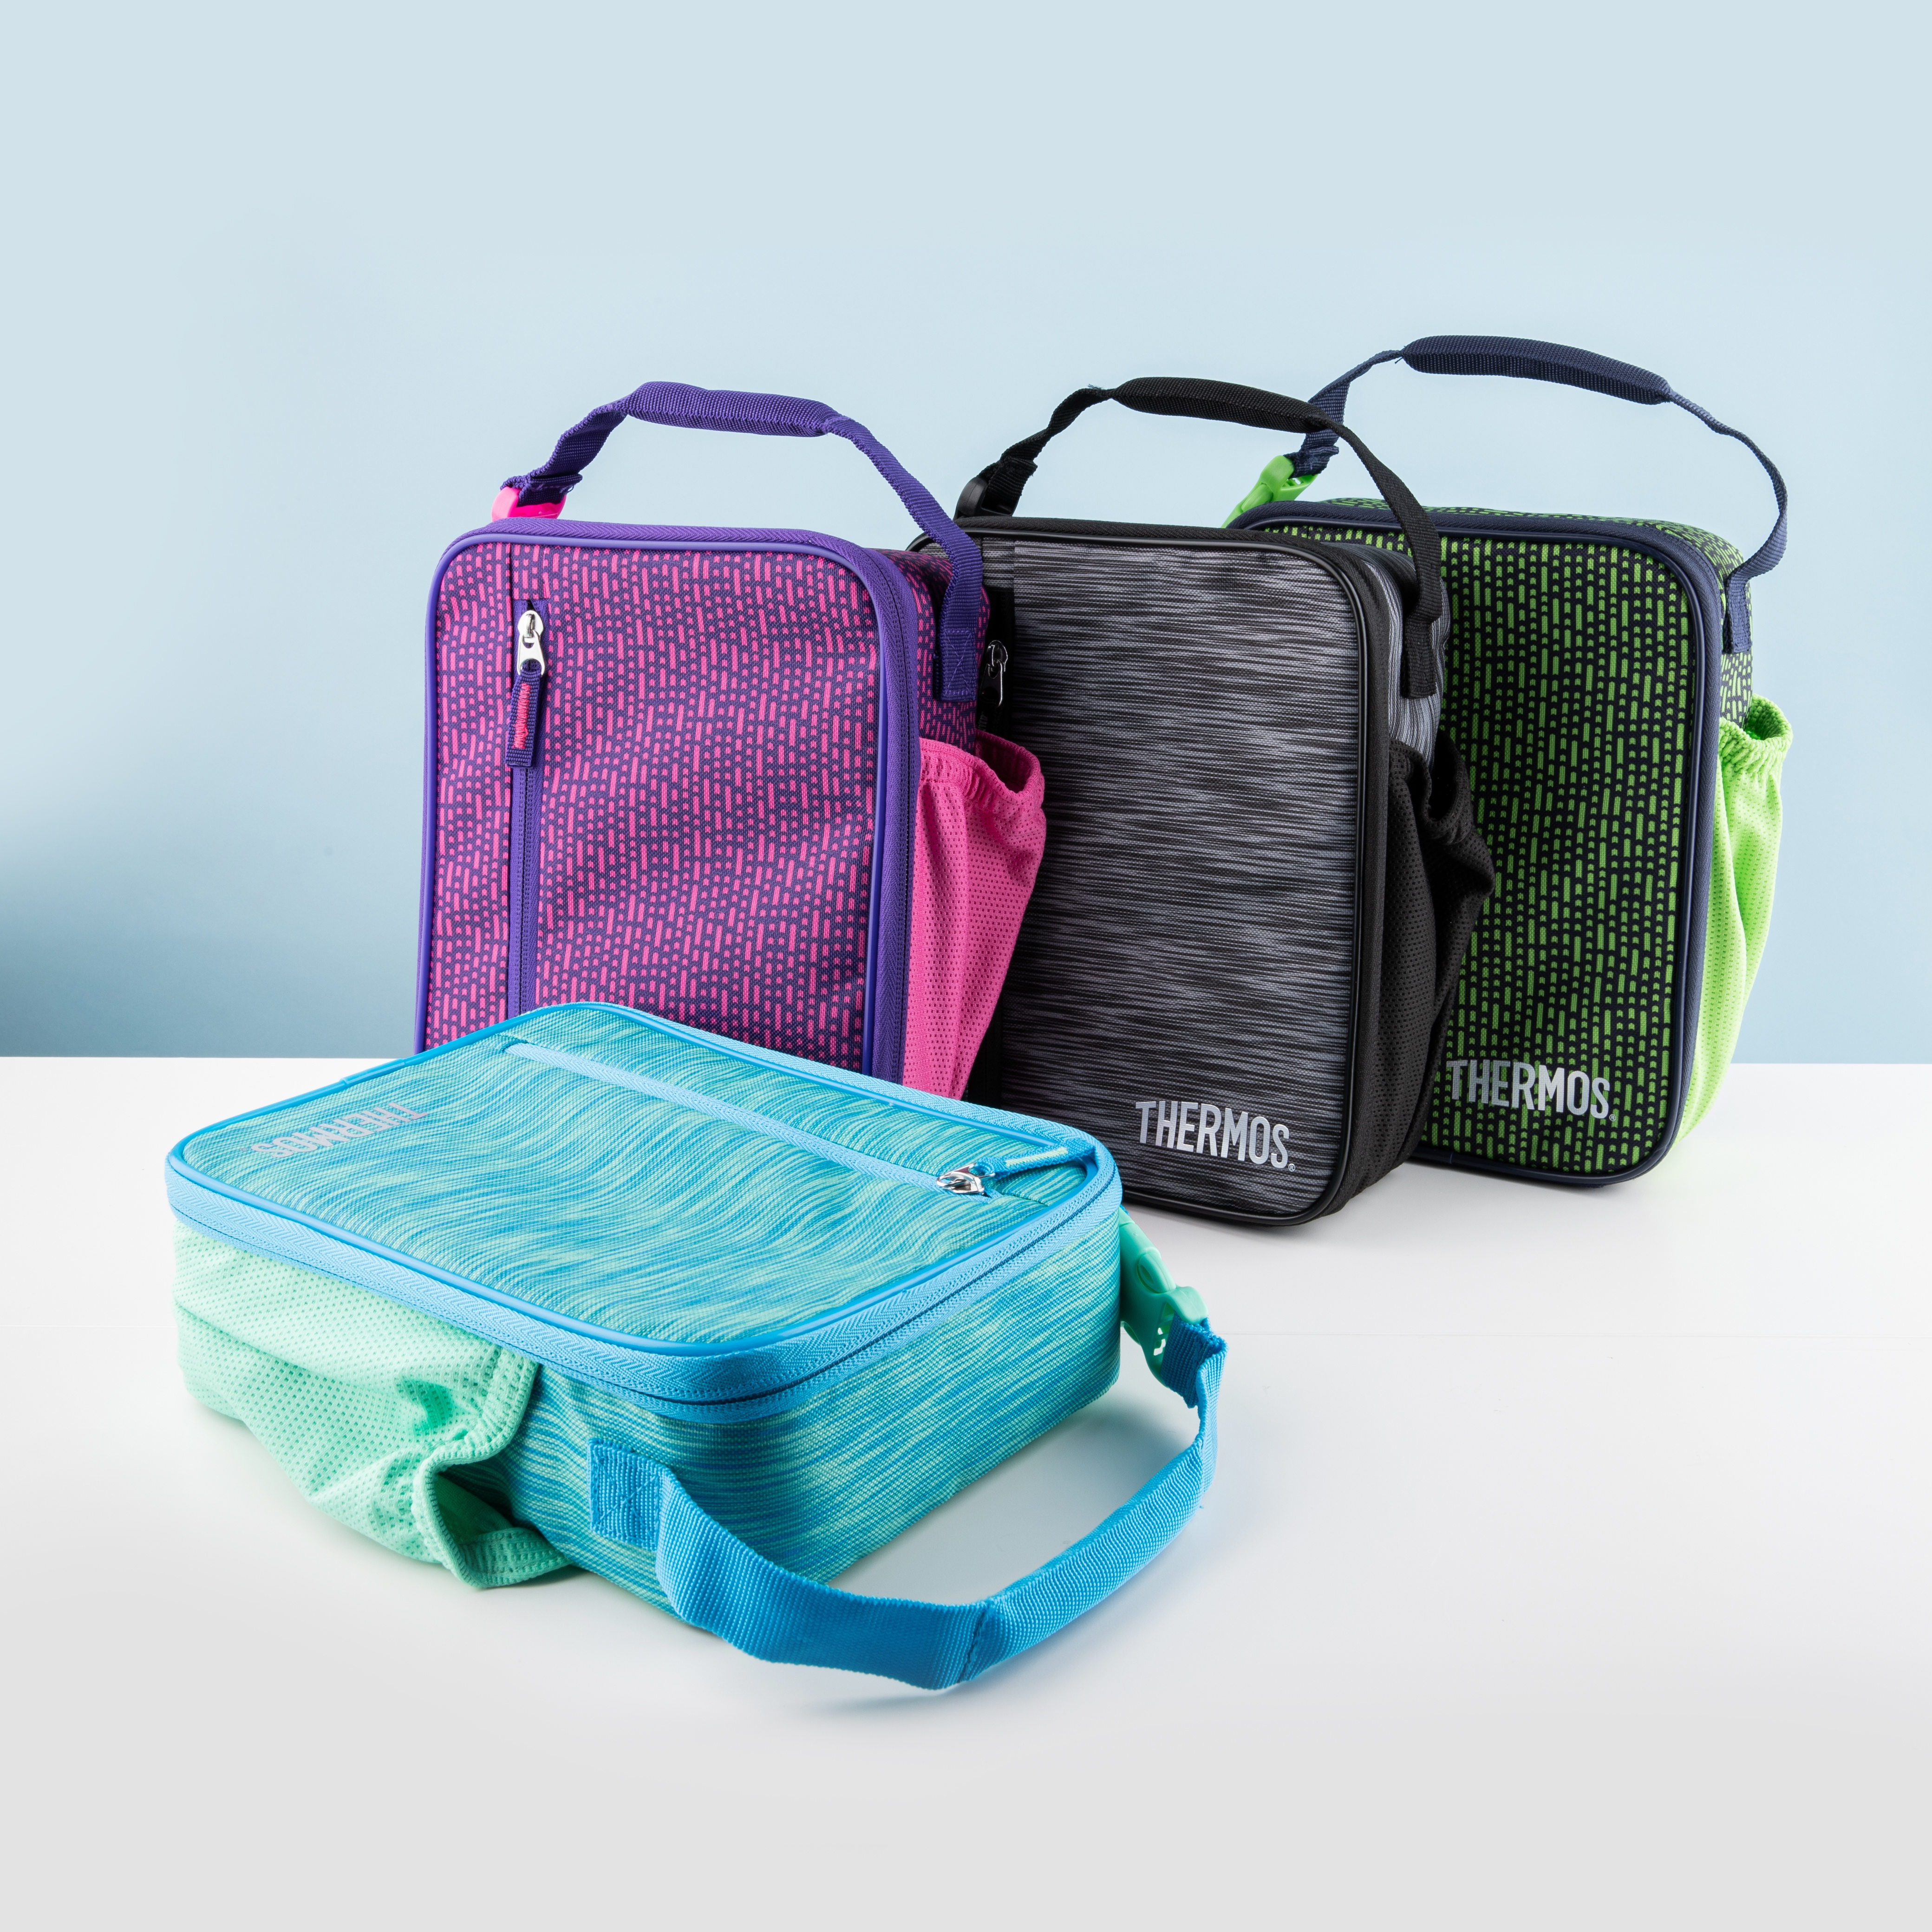 3 lunch bags standing upright with one laying flat